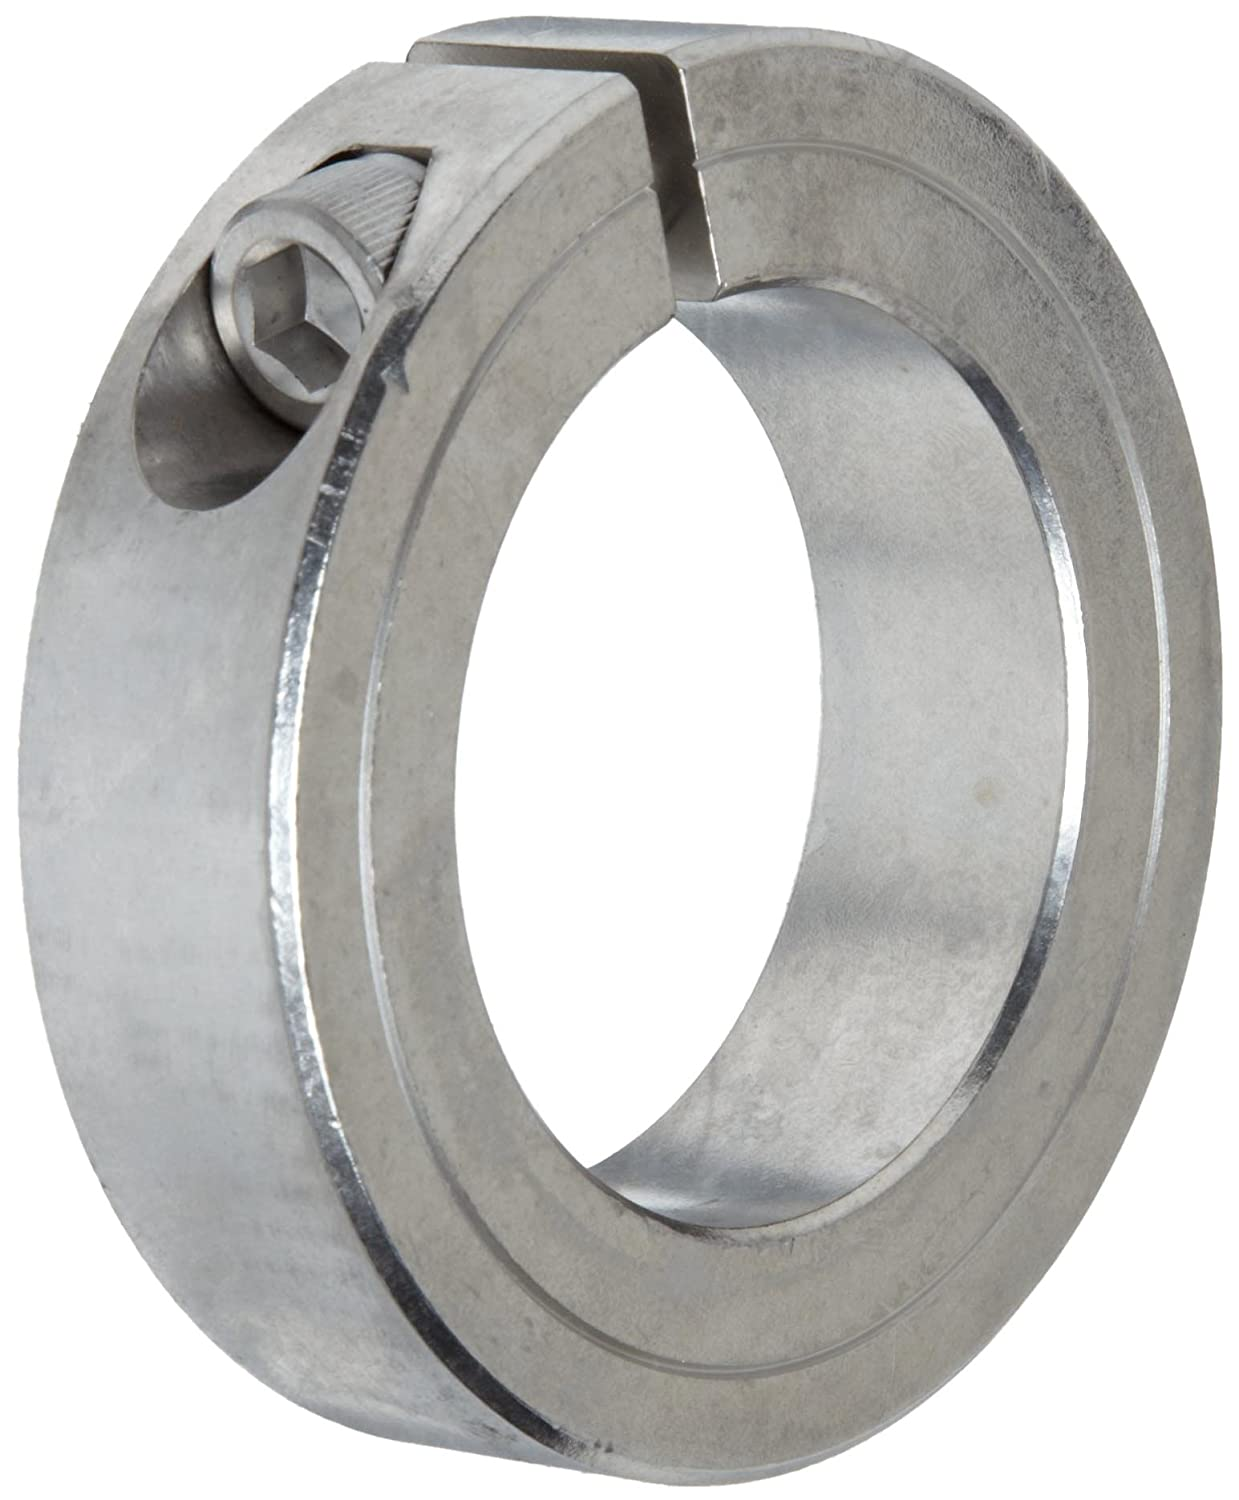 Climax Metal 1C-156-S T303 Stainless Steel One-Piece Clamping Collar, 1-9/16